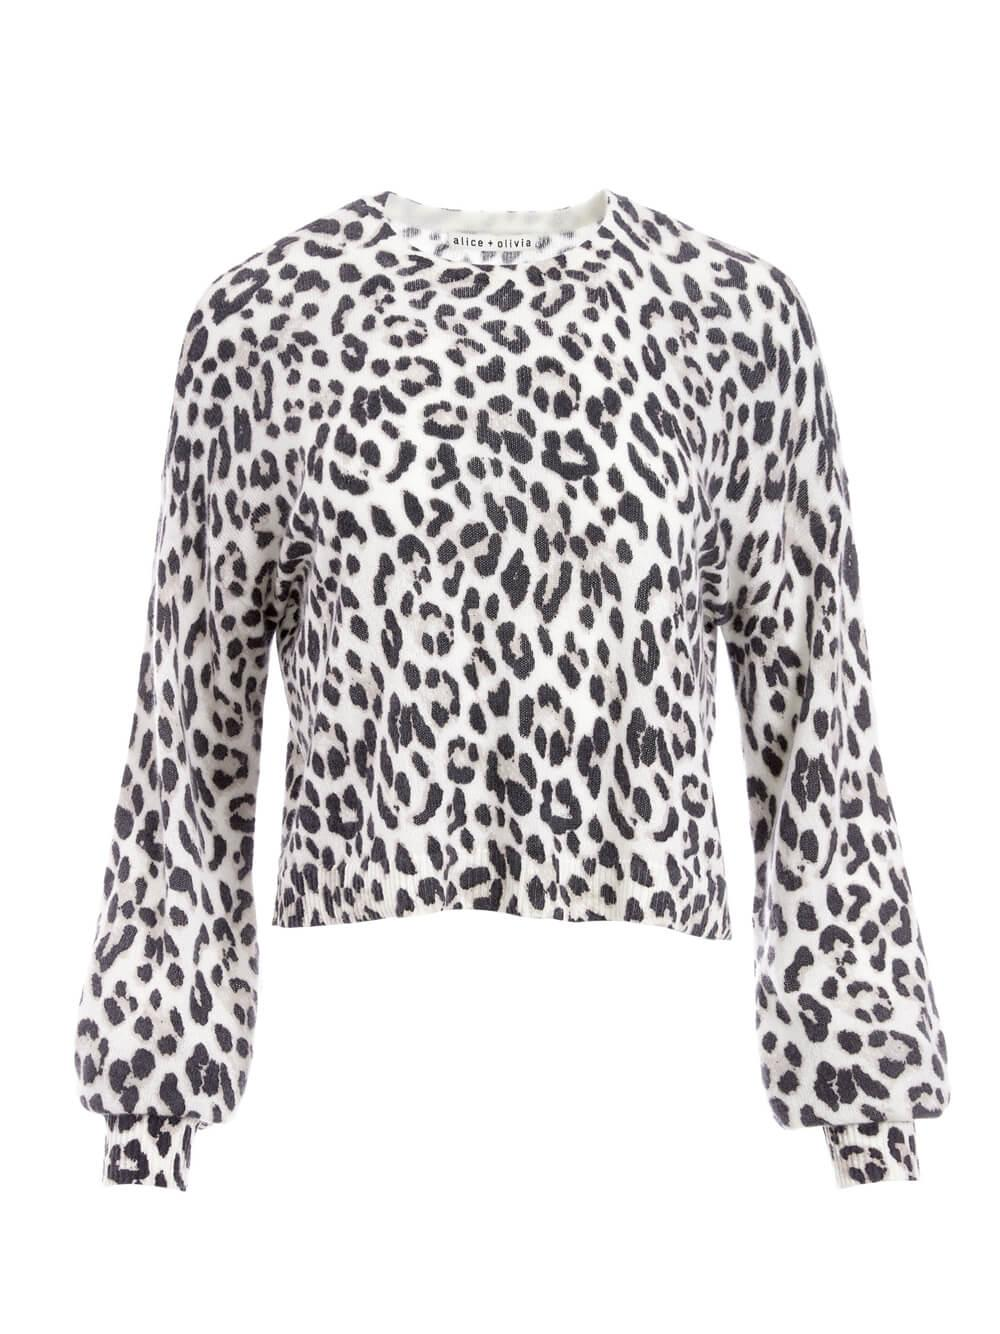 Ansley Leopard Cashmere Pullover Item # CC010S83714